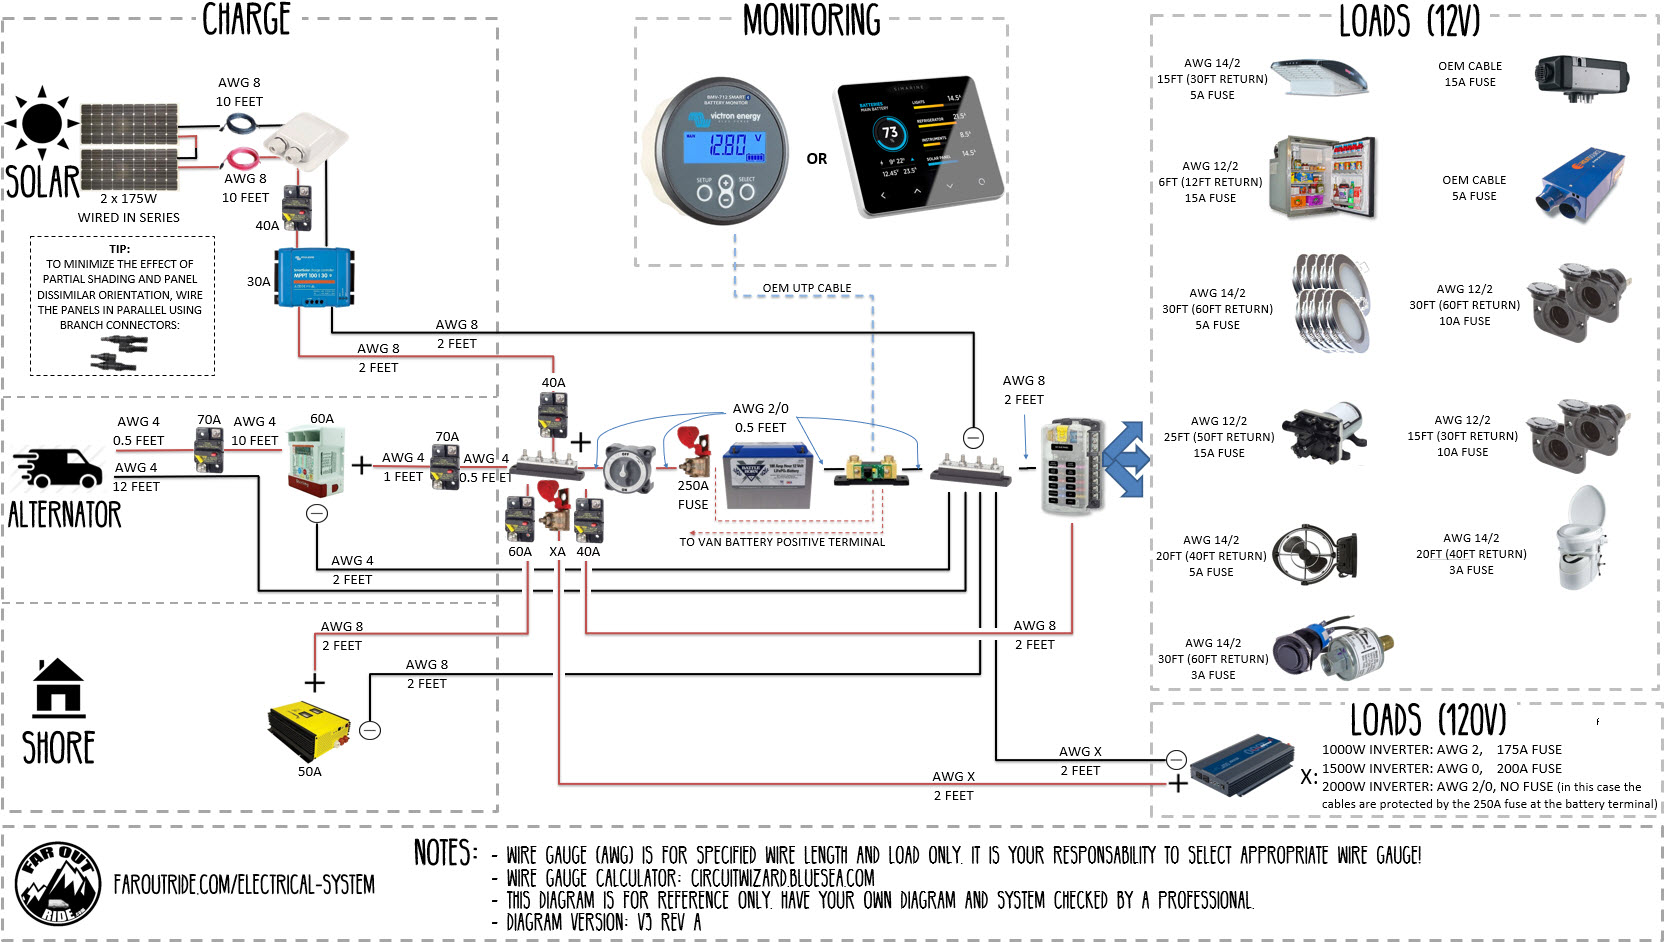 [SCHEMATICS_44OR]  Interactive Wiring Diagram For Camper Van, Skoolie, RV, etc. | FarOutRide | Wiring Diagram Rv Tutorial Download Fuse Box |  | FarOutRide.com